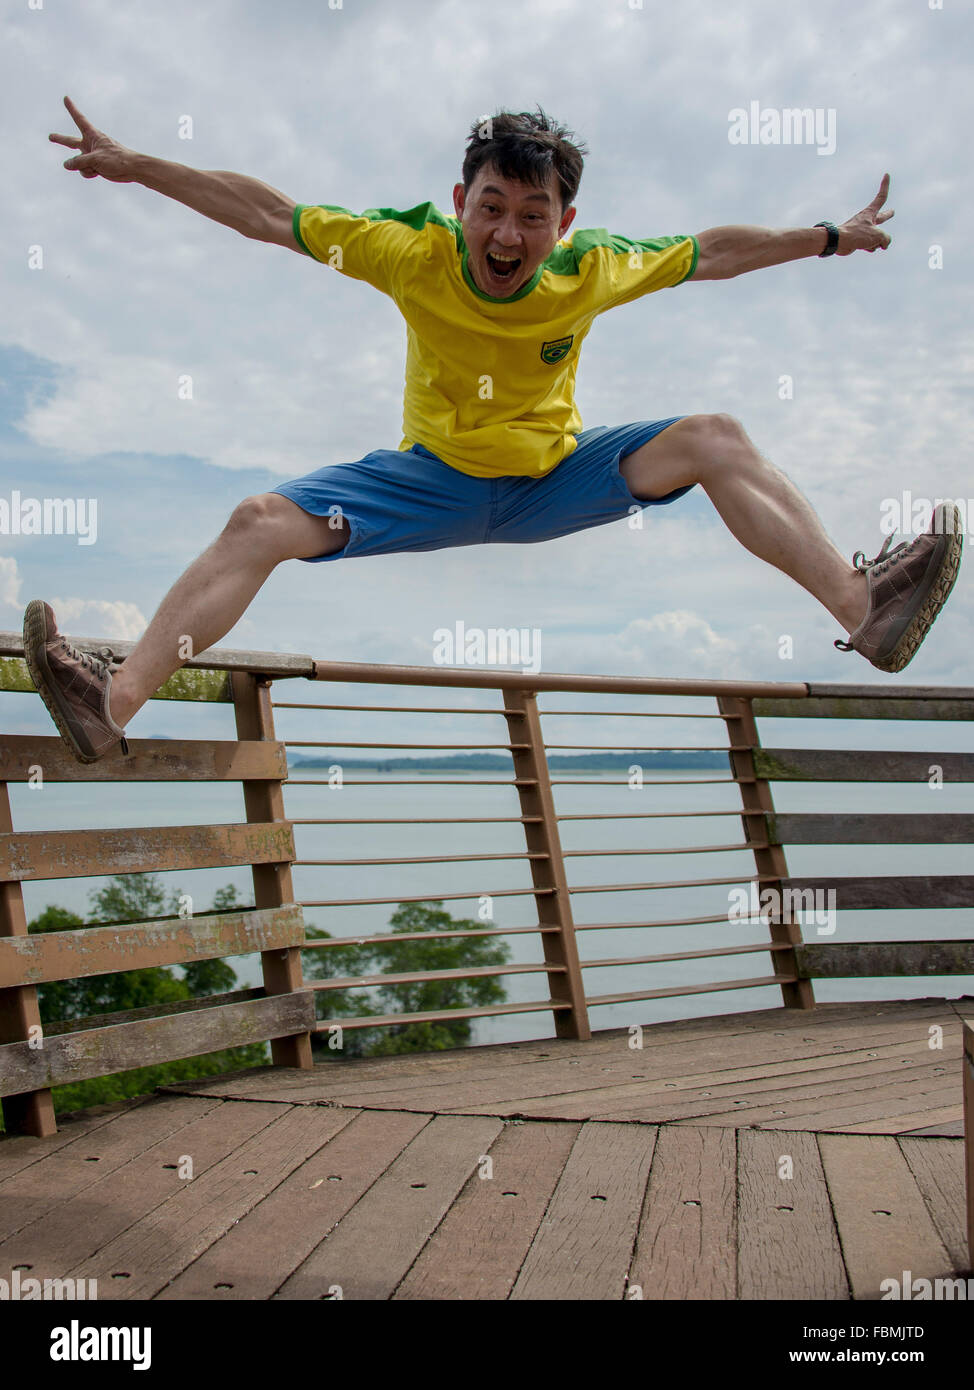 Happy Man Shouting While Jumping On Boardwalk - Stock Image